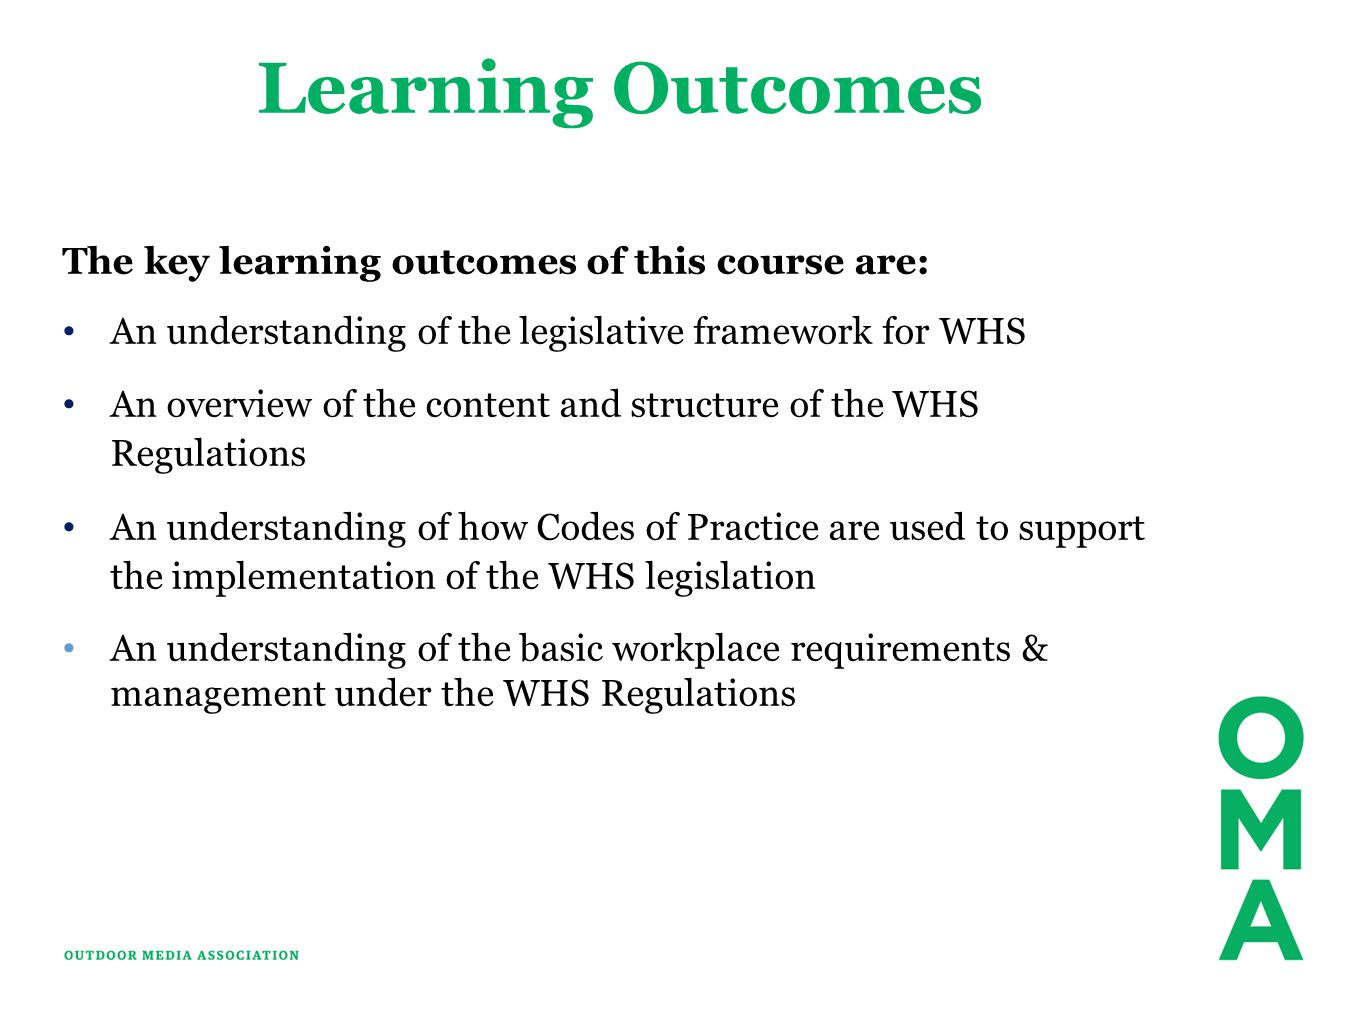 Learning Outcomes The key learning outcomes of this course are: An understanding of the legislative framework for WHS An overview of the content and structure of the WHS Regulations An understanding of how Codes of Practice are used to support the implementation of the WHS legislation An understanding of the basic workplace requirements & management under the WHS Regulations